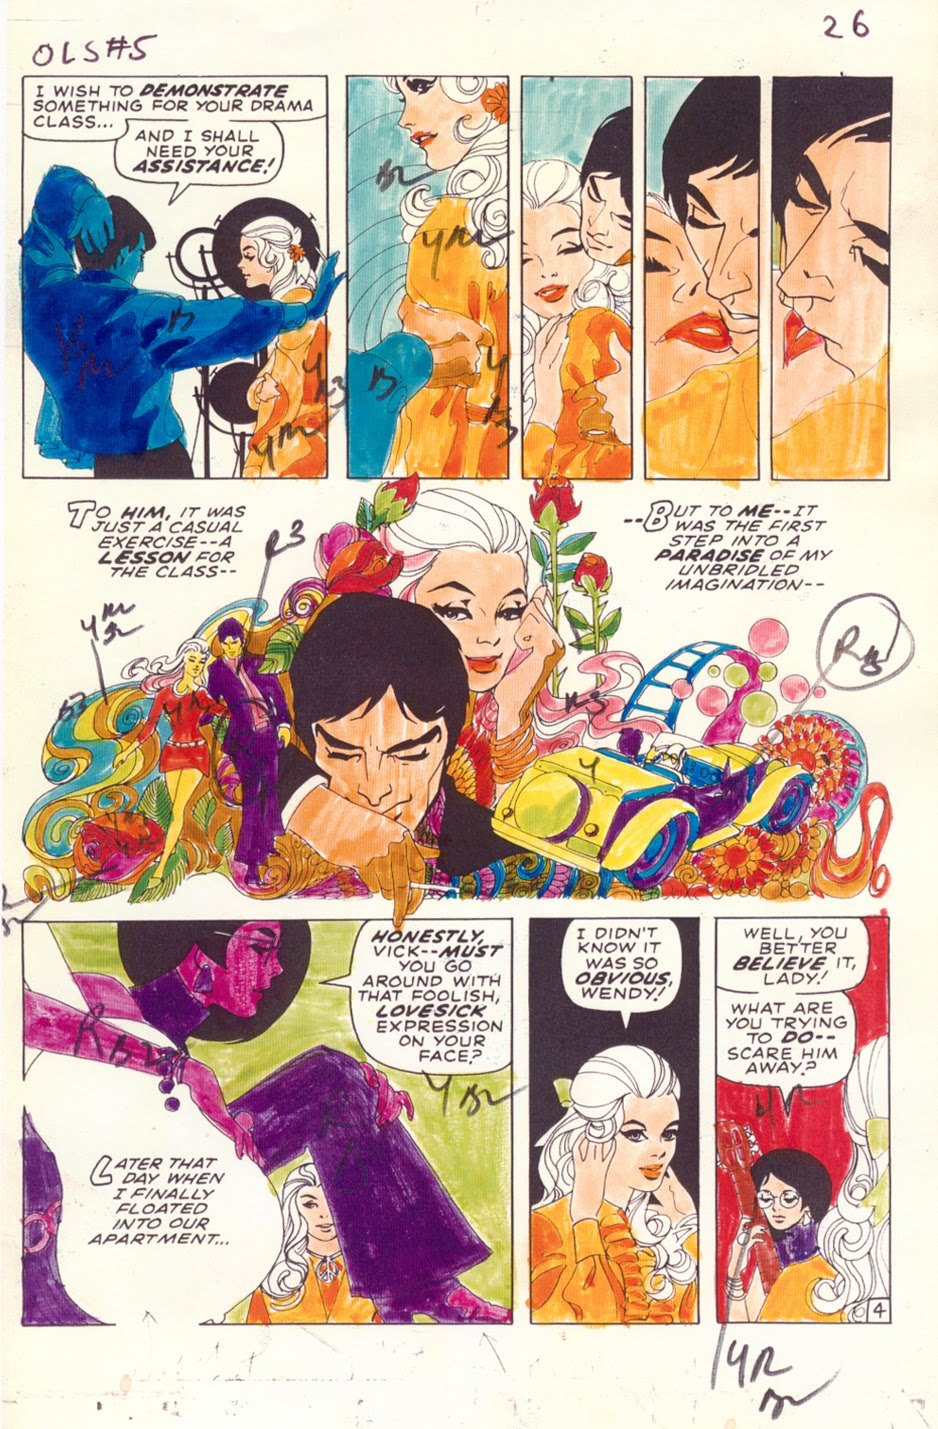 "seanhowe:  Color guide from ""My Heart Broke in Hollywood"" by Jim Steranko. From OUR LOVE STORY#5, June 1970."